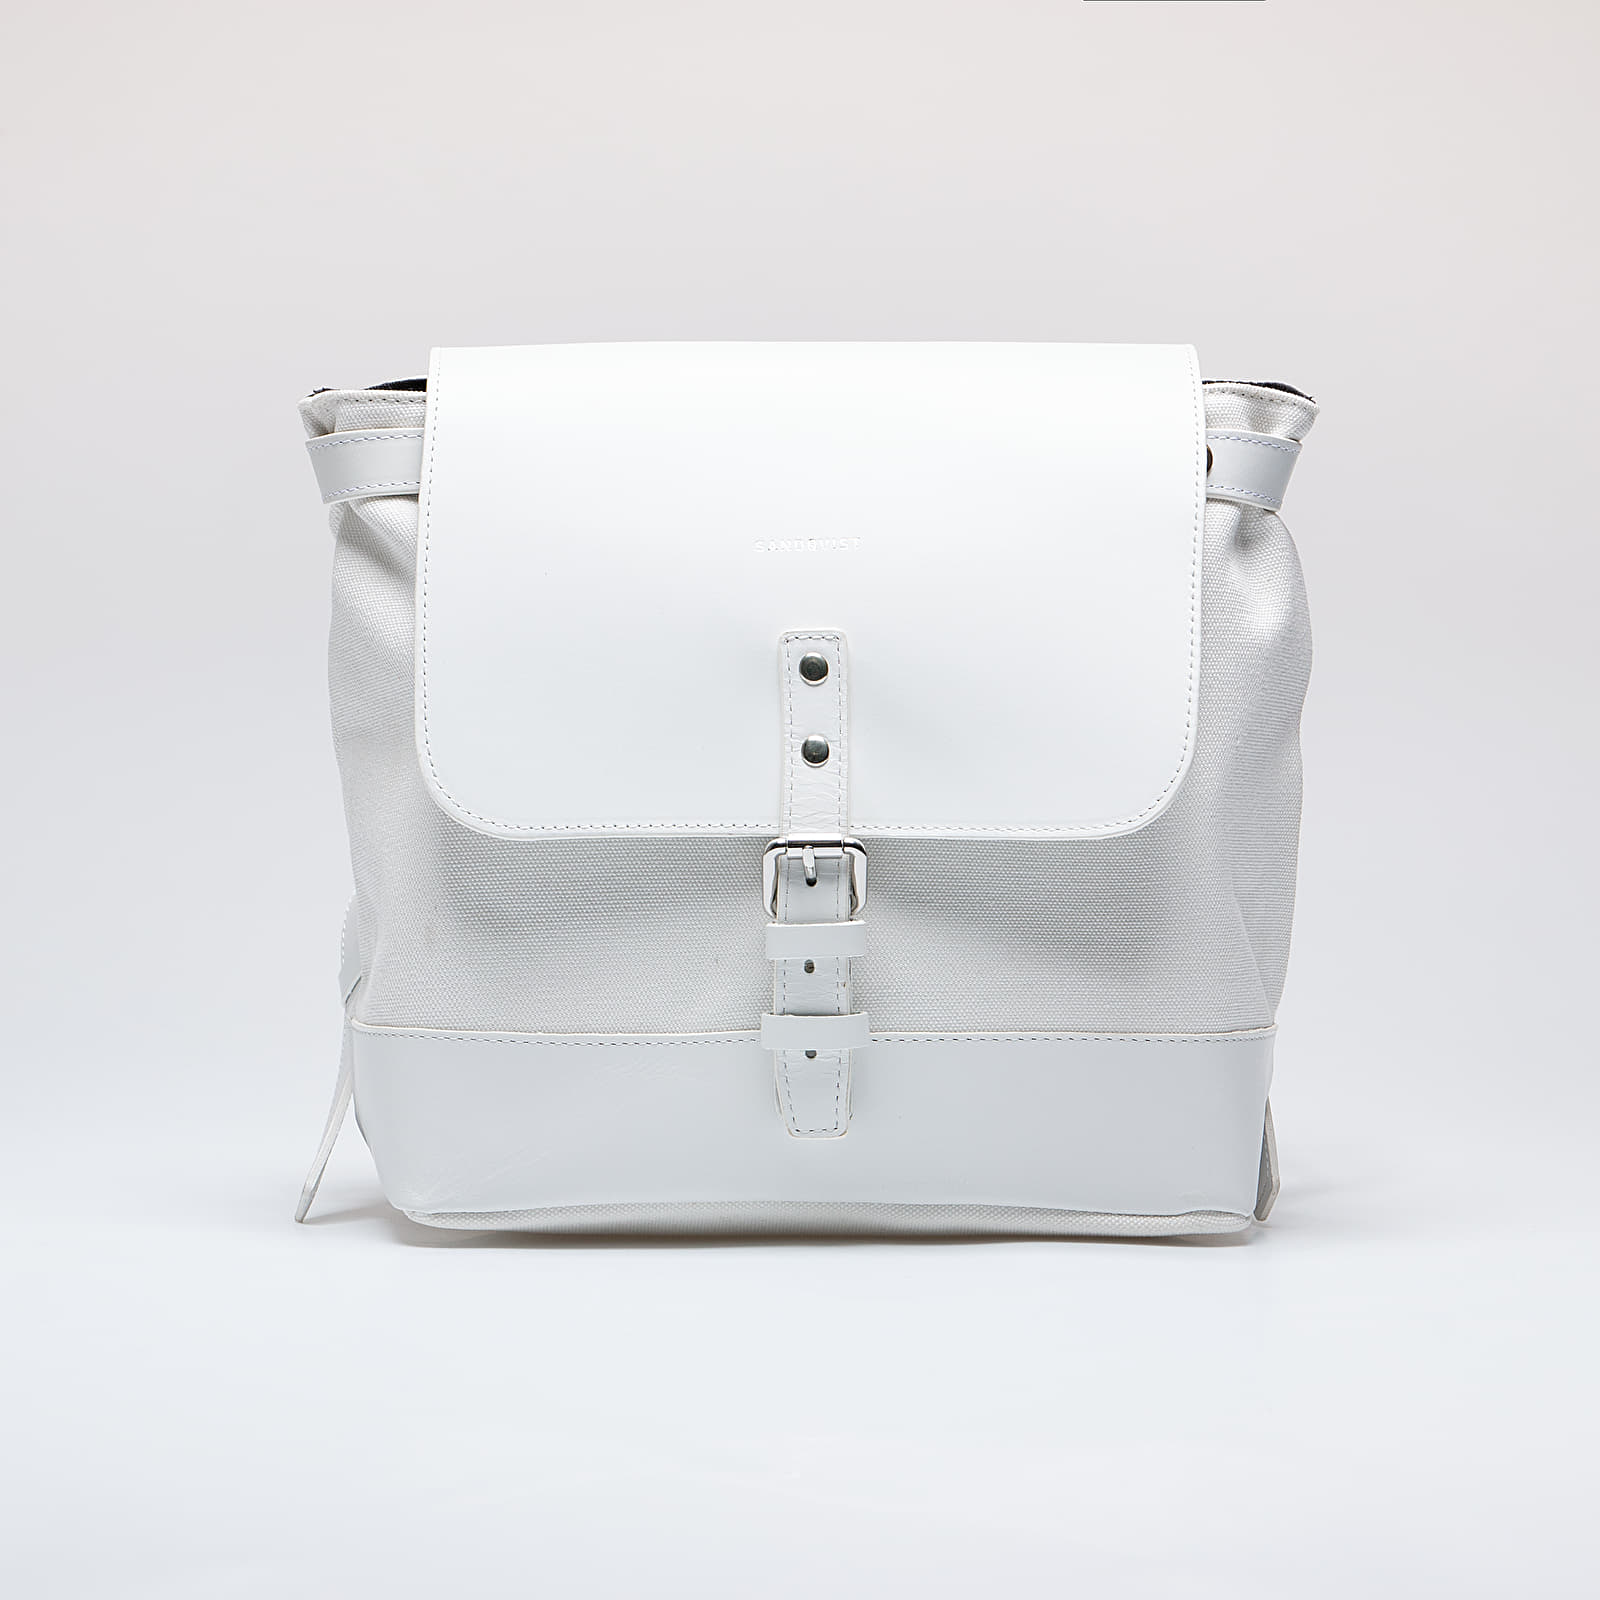 Backpacks SANDQVIST Vilda Off White/ White Leather